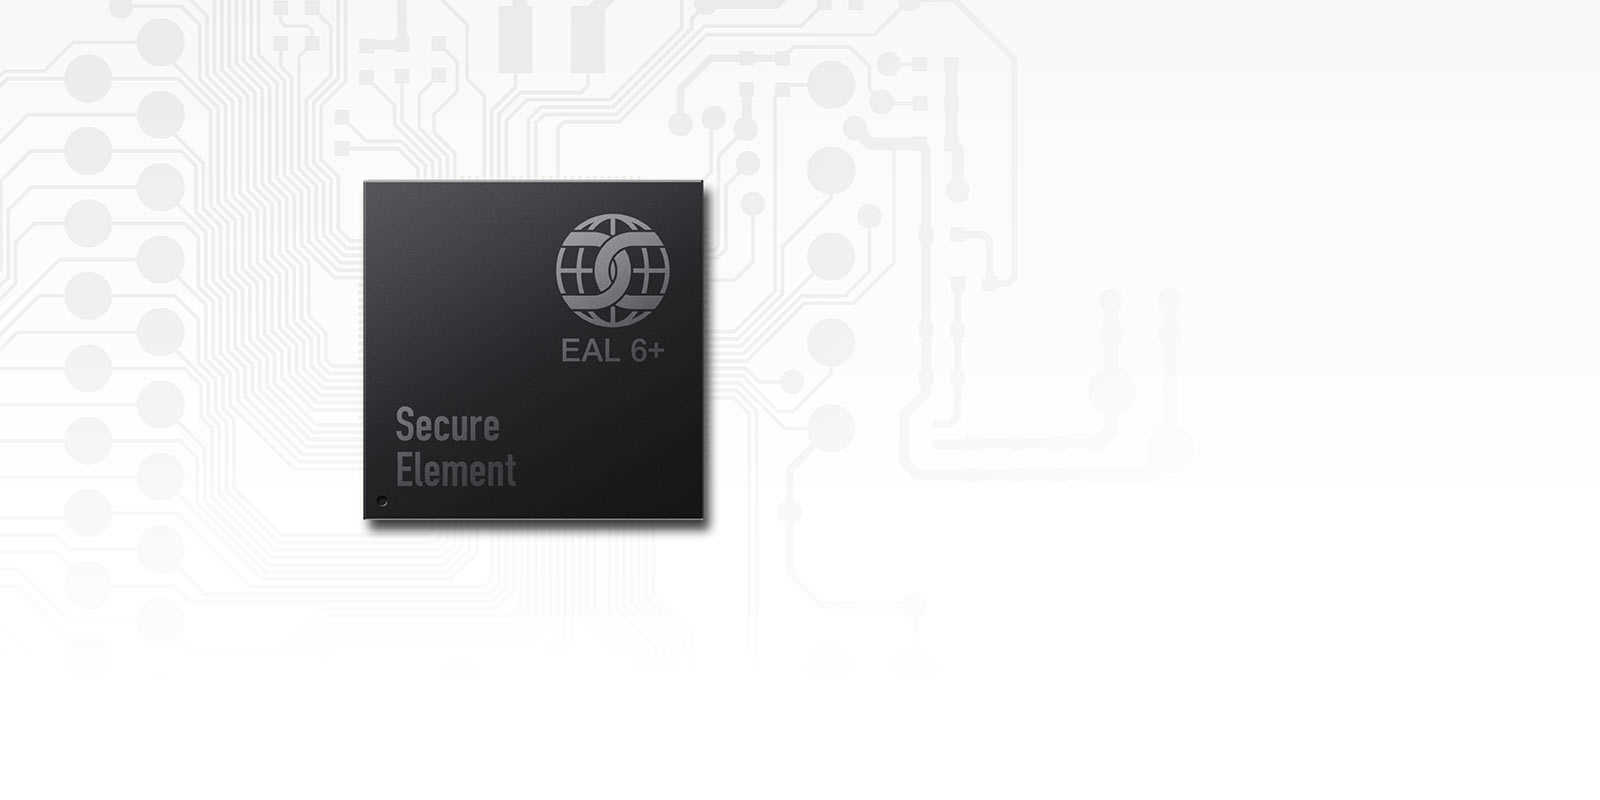 CC EAL6+ certified secure element